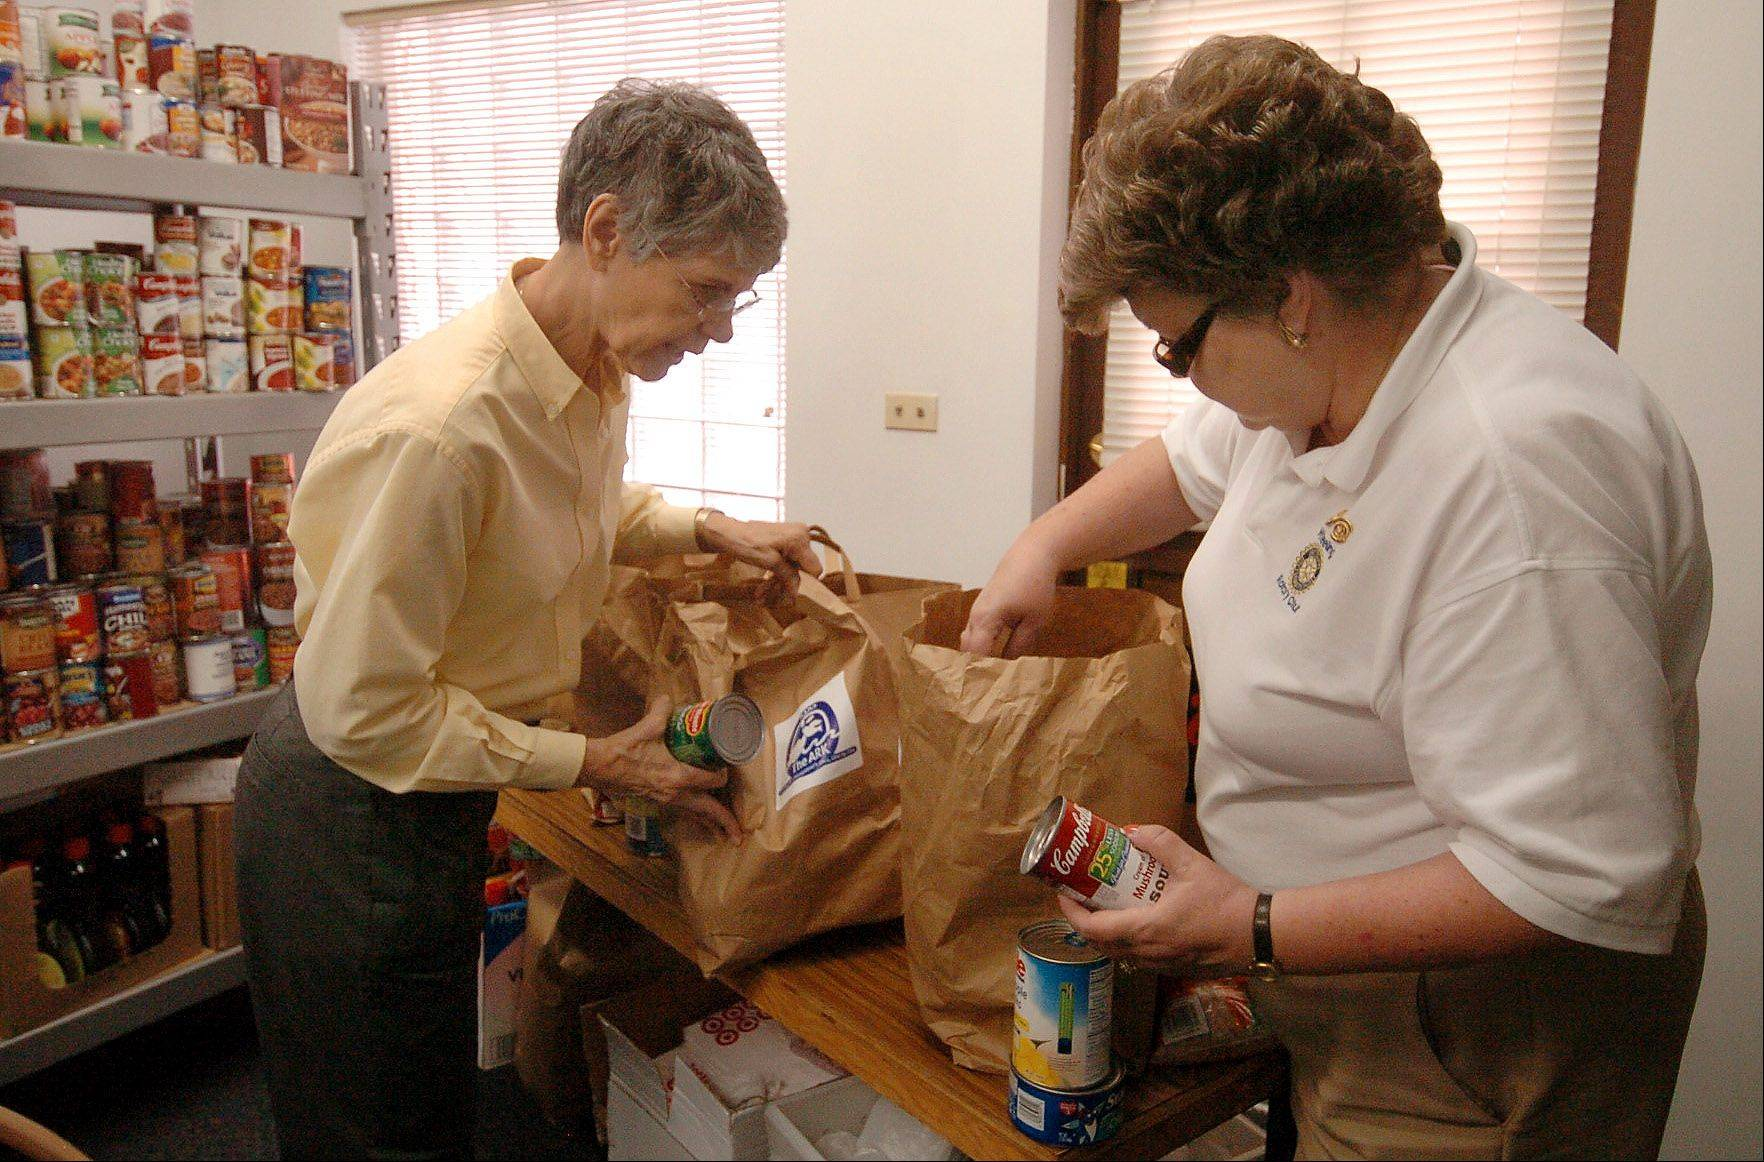 Barbara Bradley, left, and Karen Pradun sort through groceries.